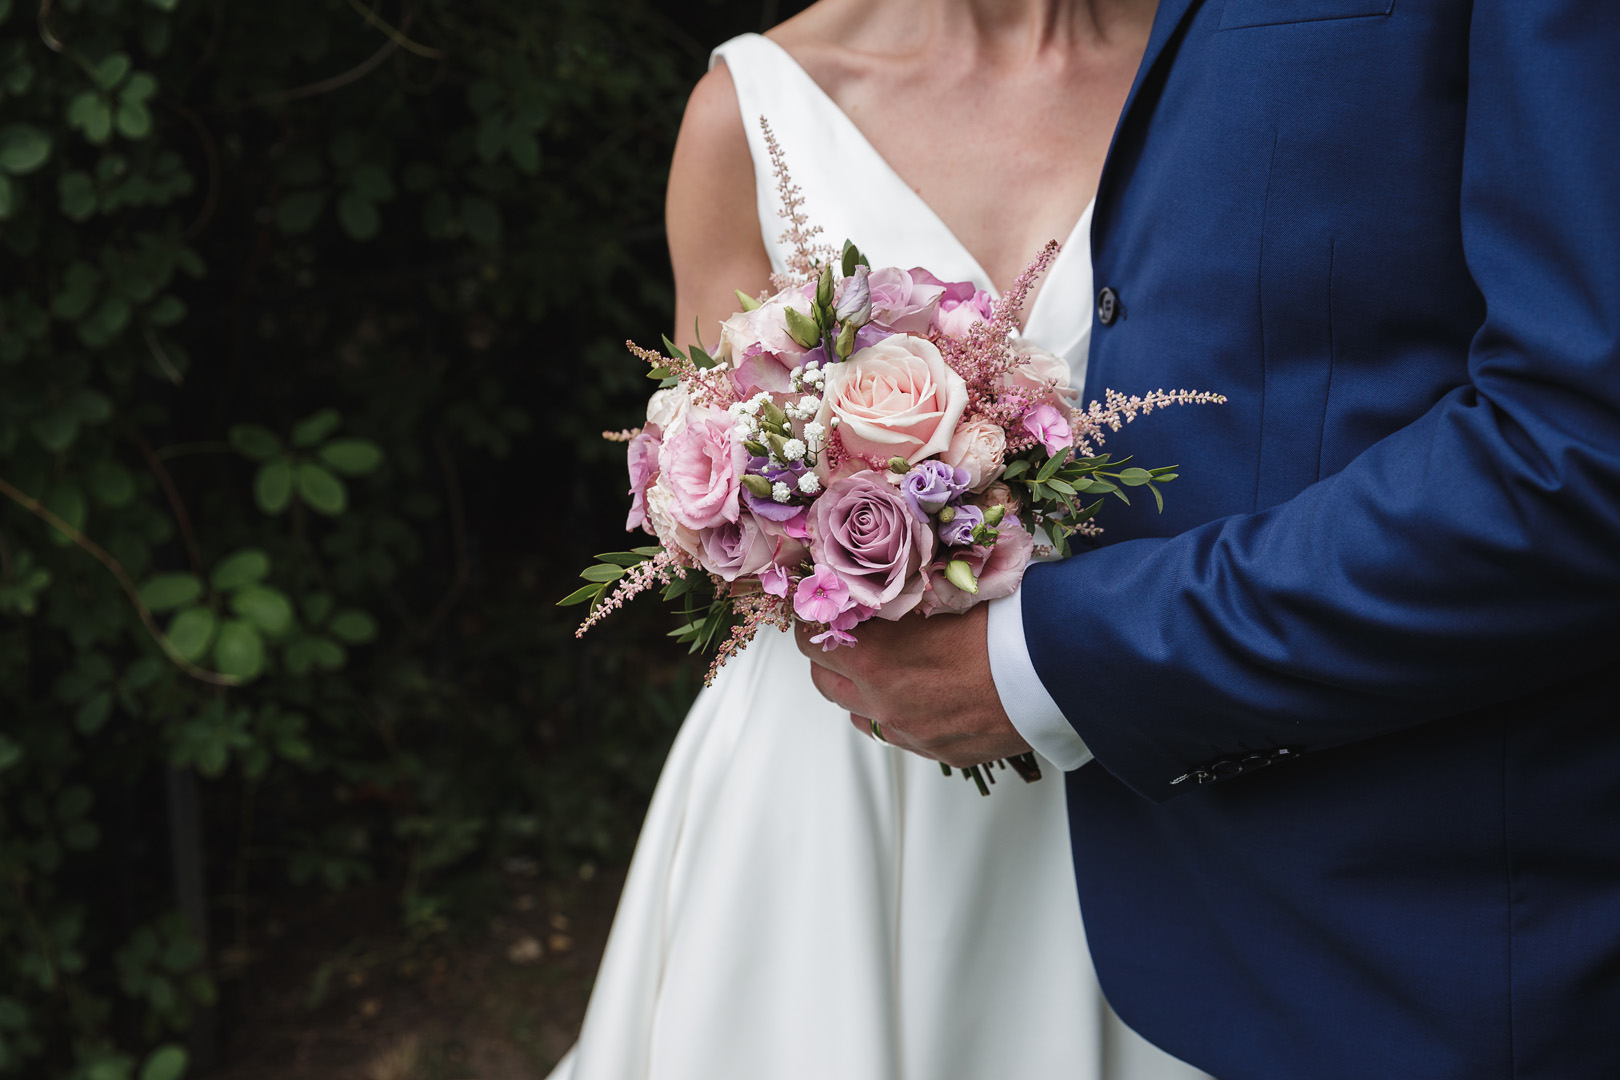 Bride's bouquet held by groom